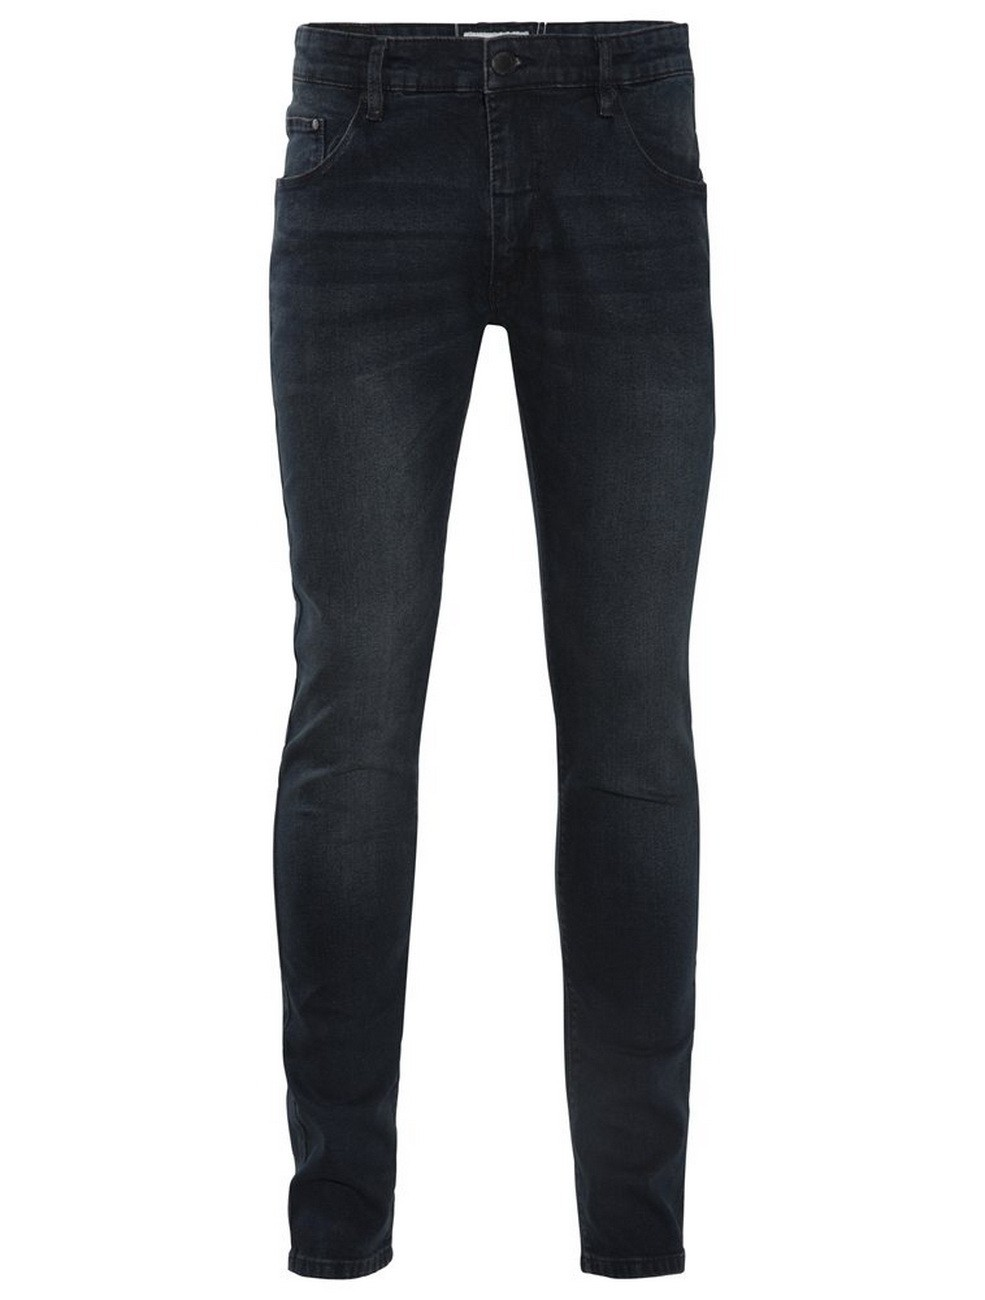 Shine Original Herren Jeans Bronx - Slim Fit - Blau -  Autumn Blue